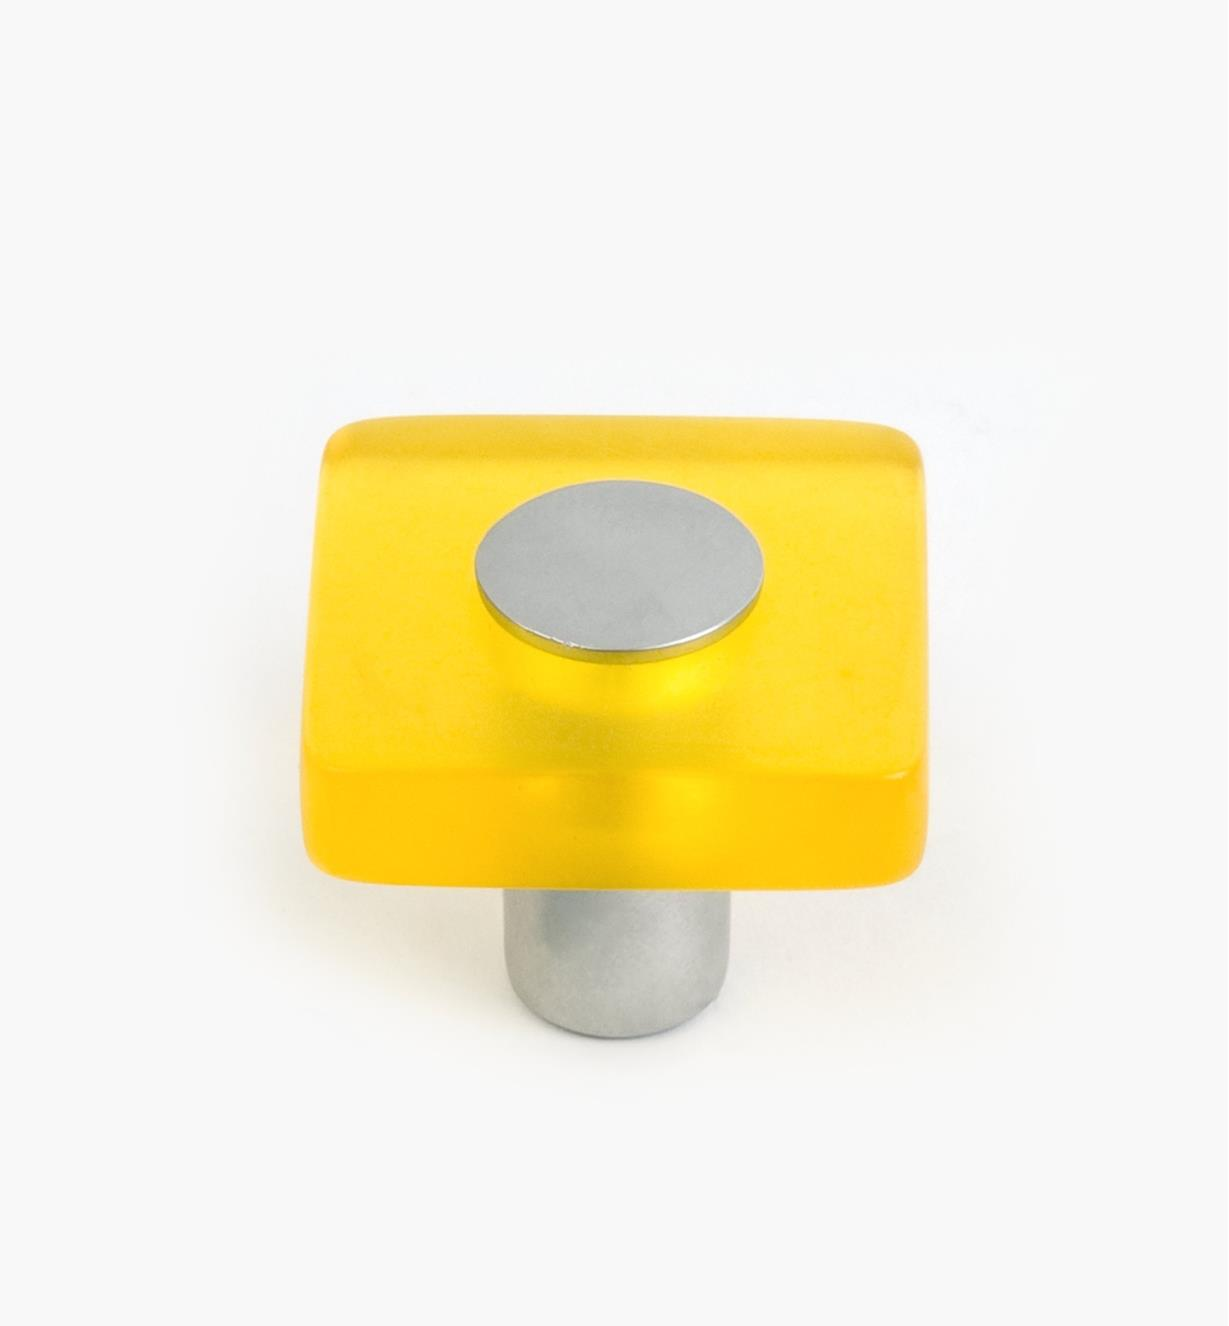 01W1180 - Malaga Hardware, Yellow Square Knob